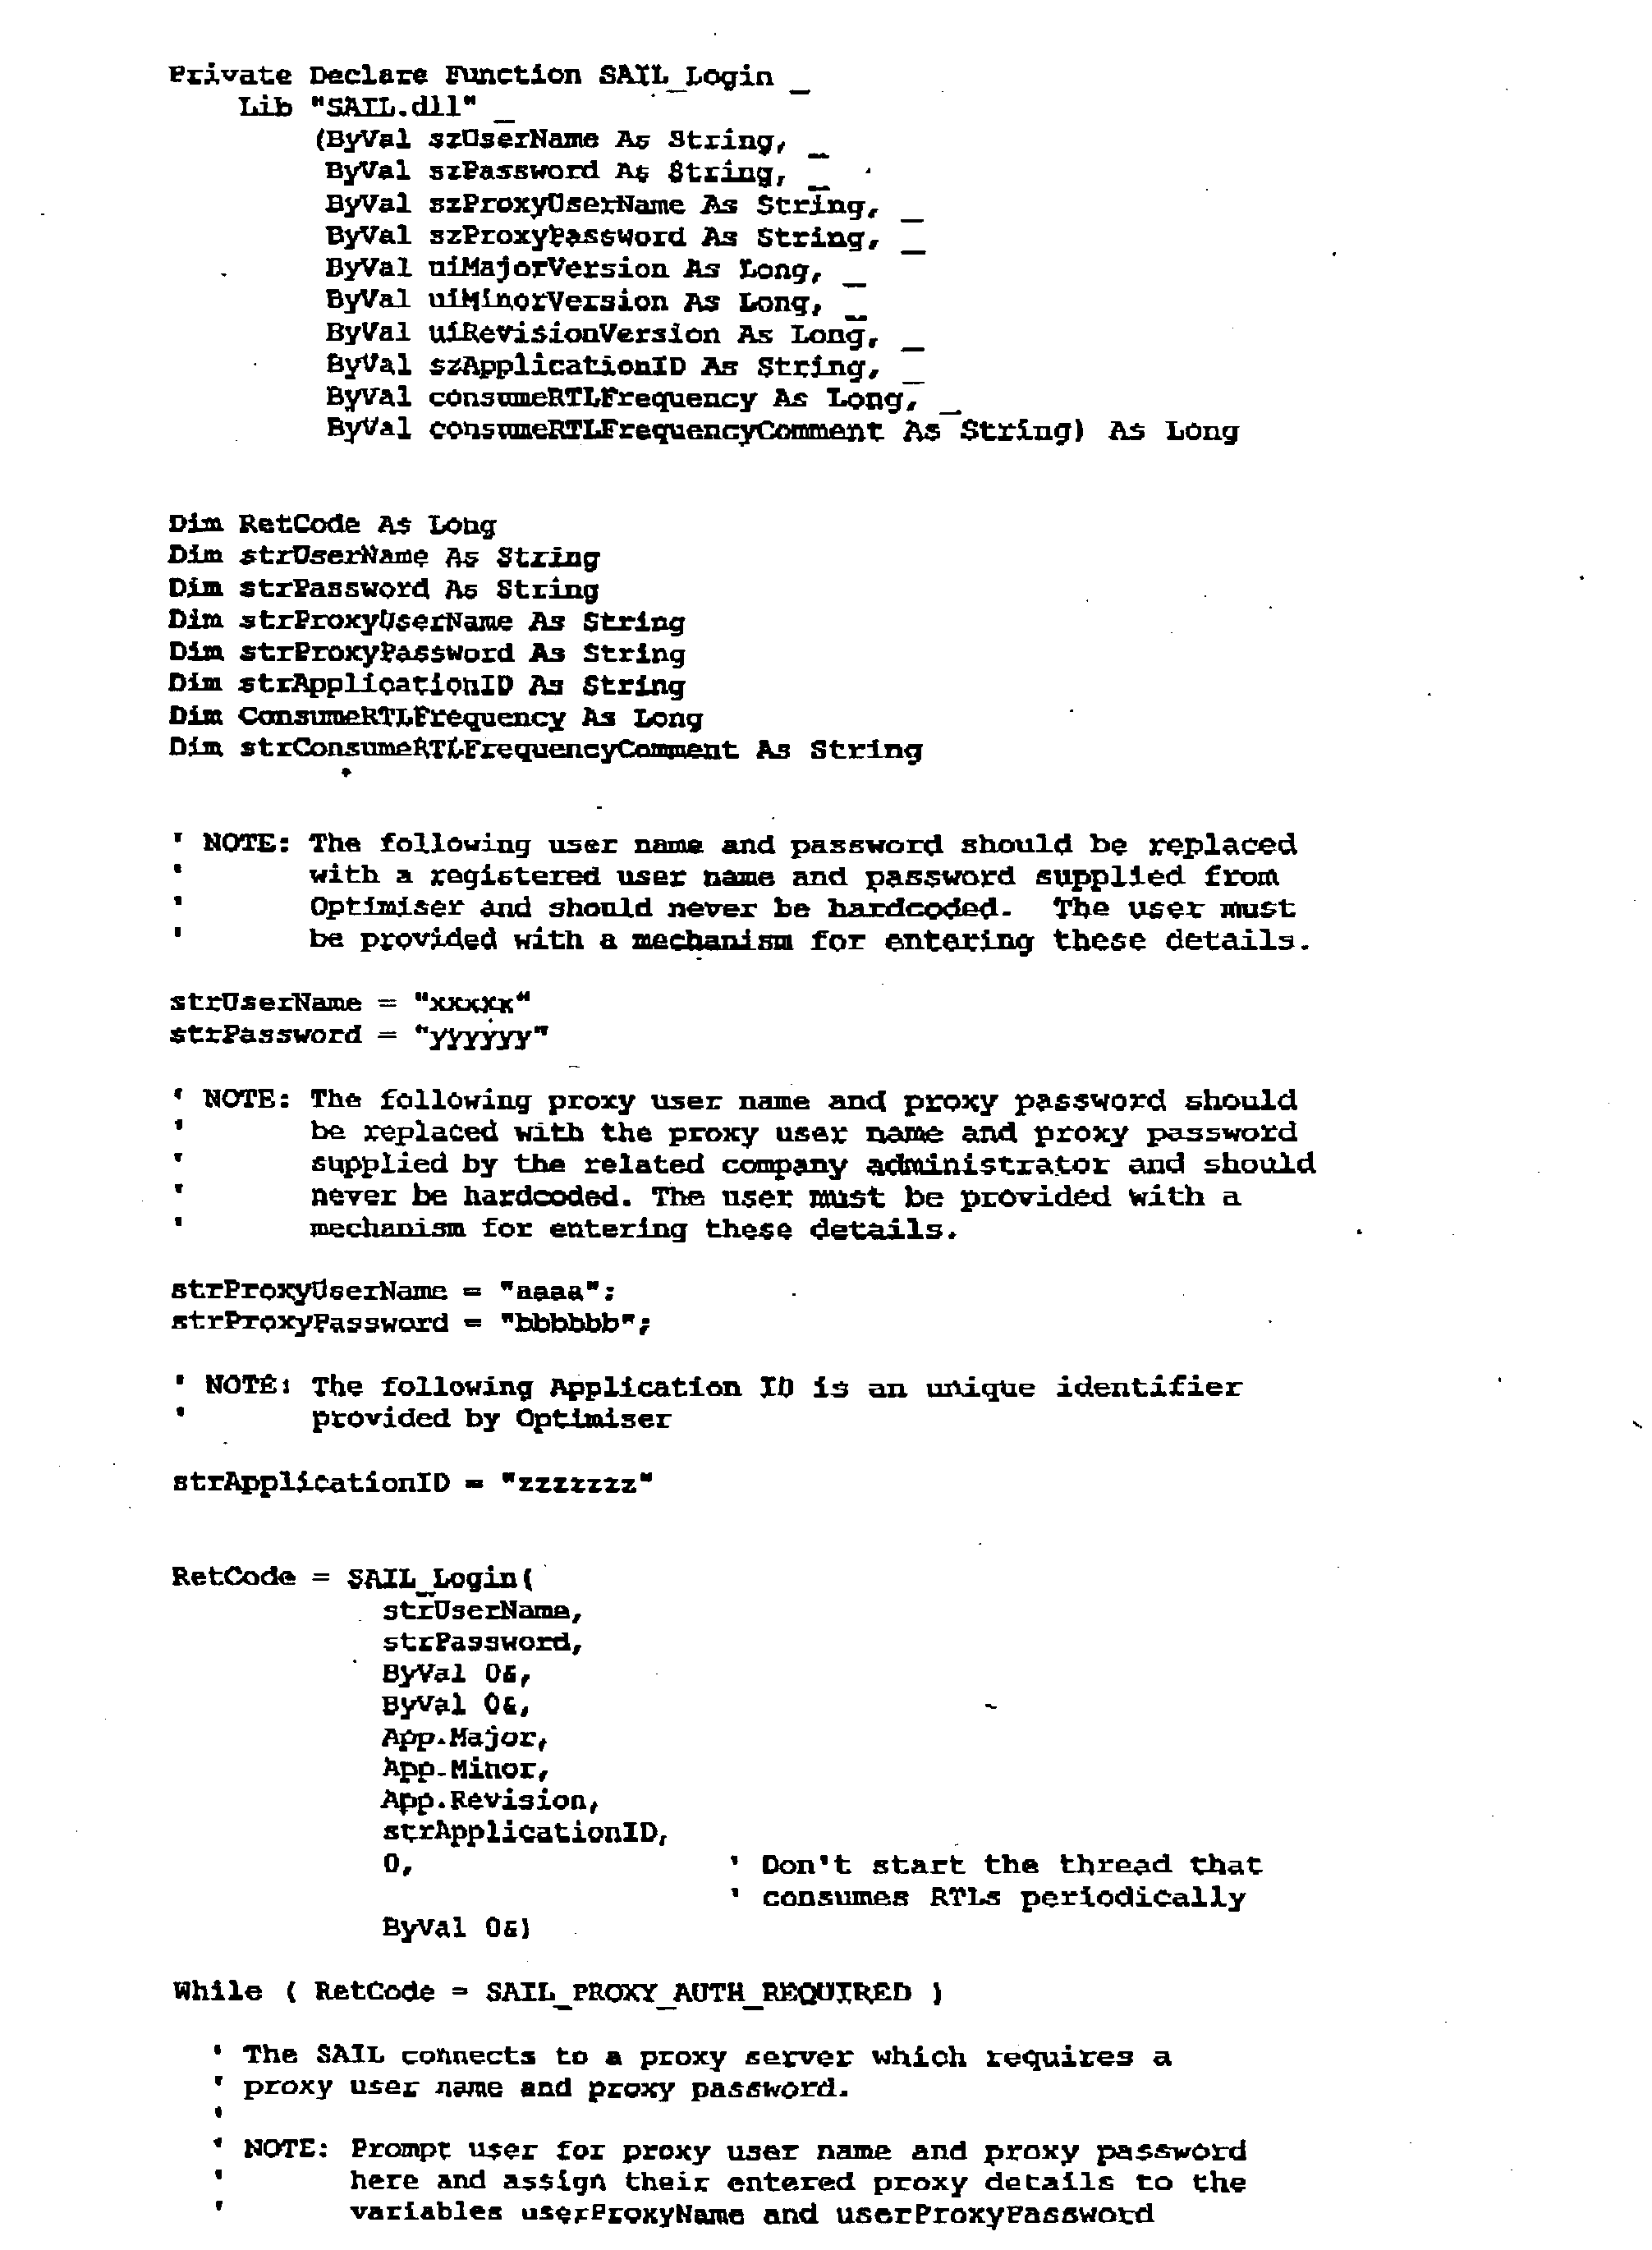 US20030163741A1 - Authorising use of a computer program